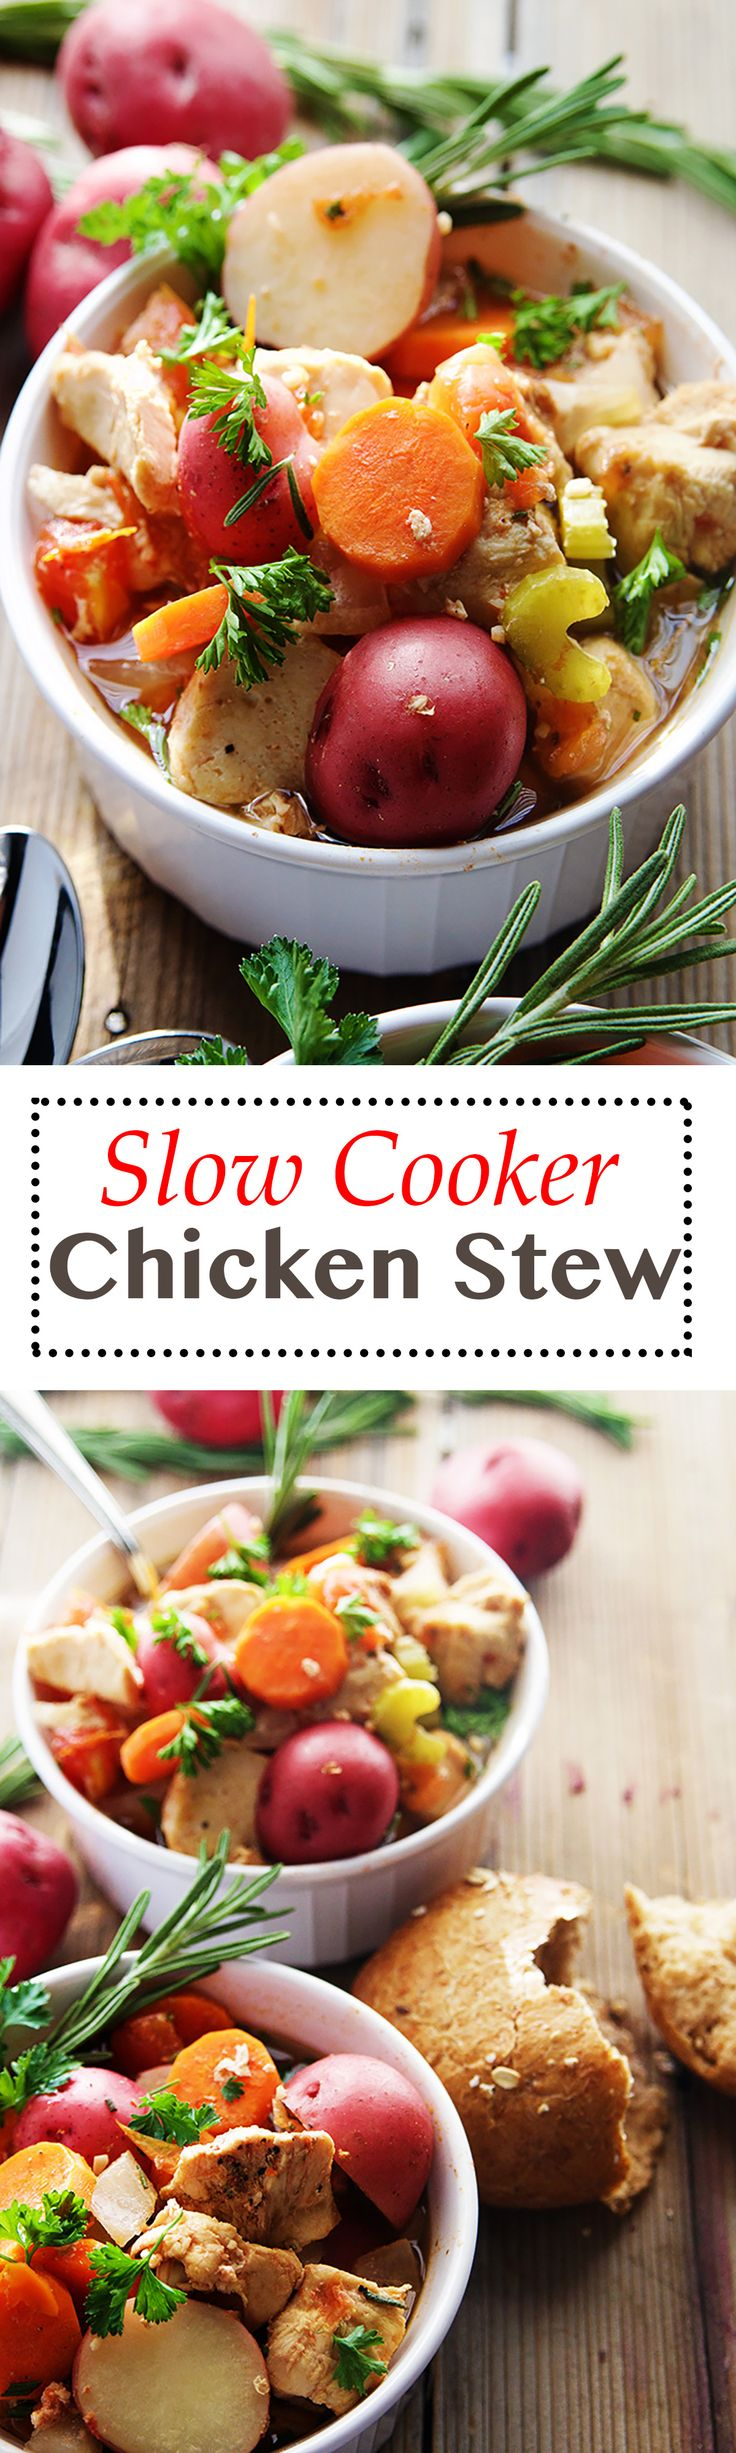 Time to dust off the slow cookers and think about easy delicious meals we can set and forget.